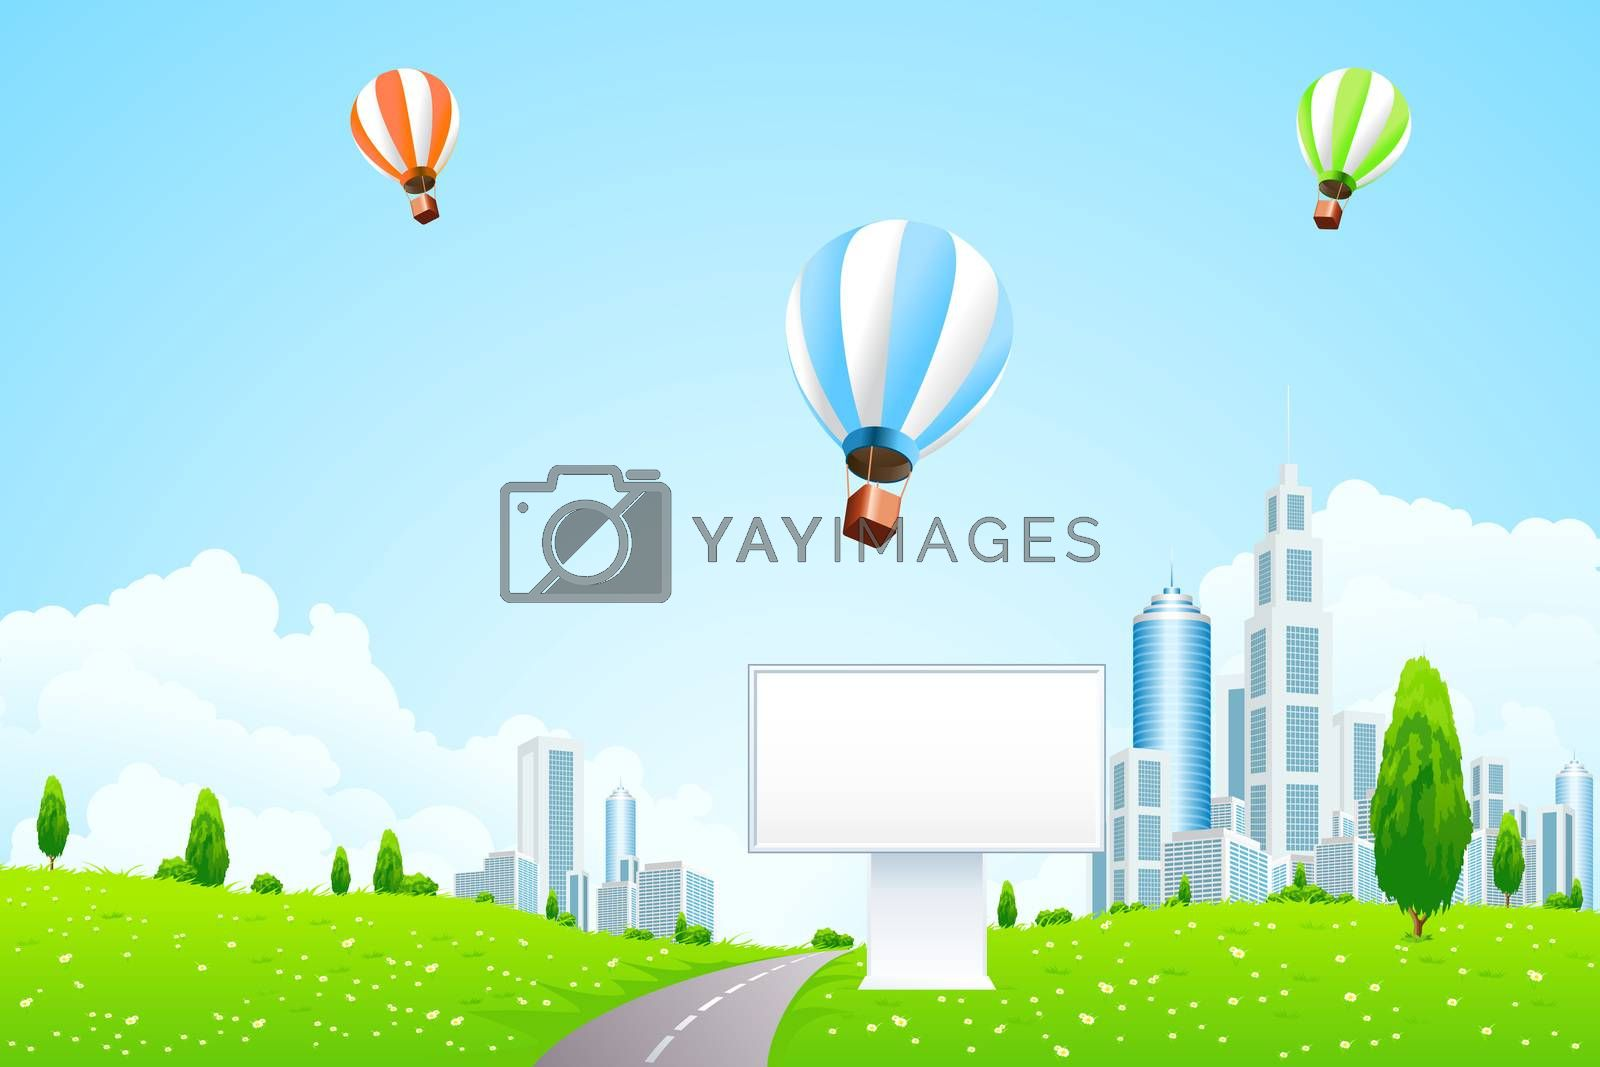 Green City Landscape with Hot Air Balloons by WaD